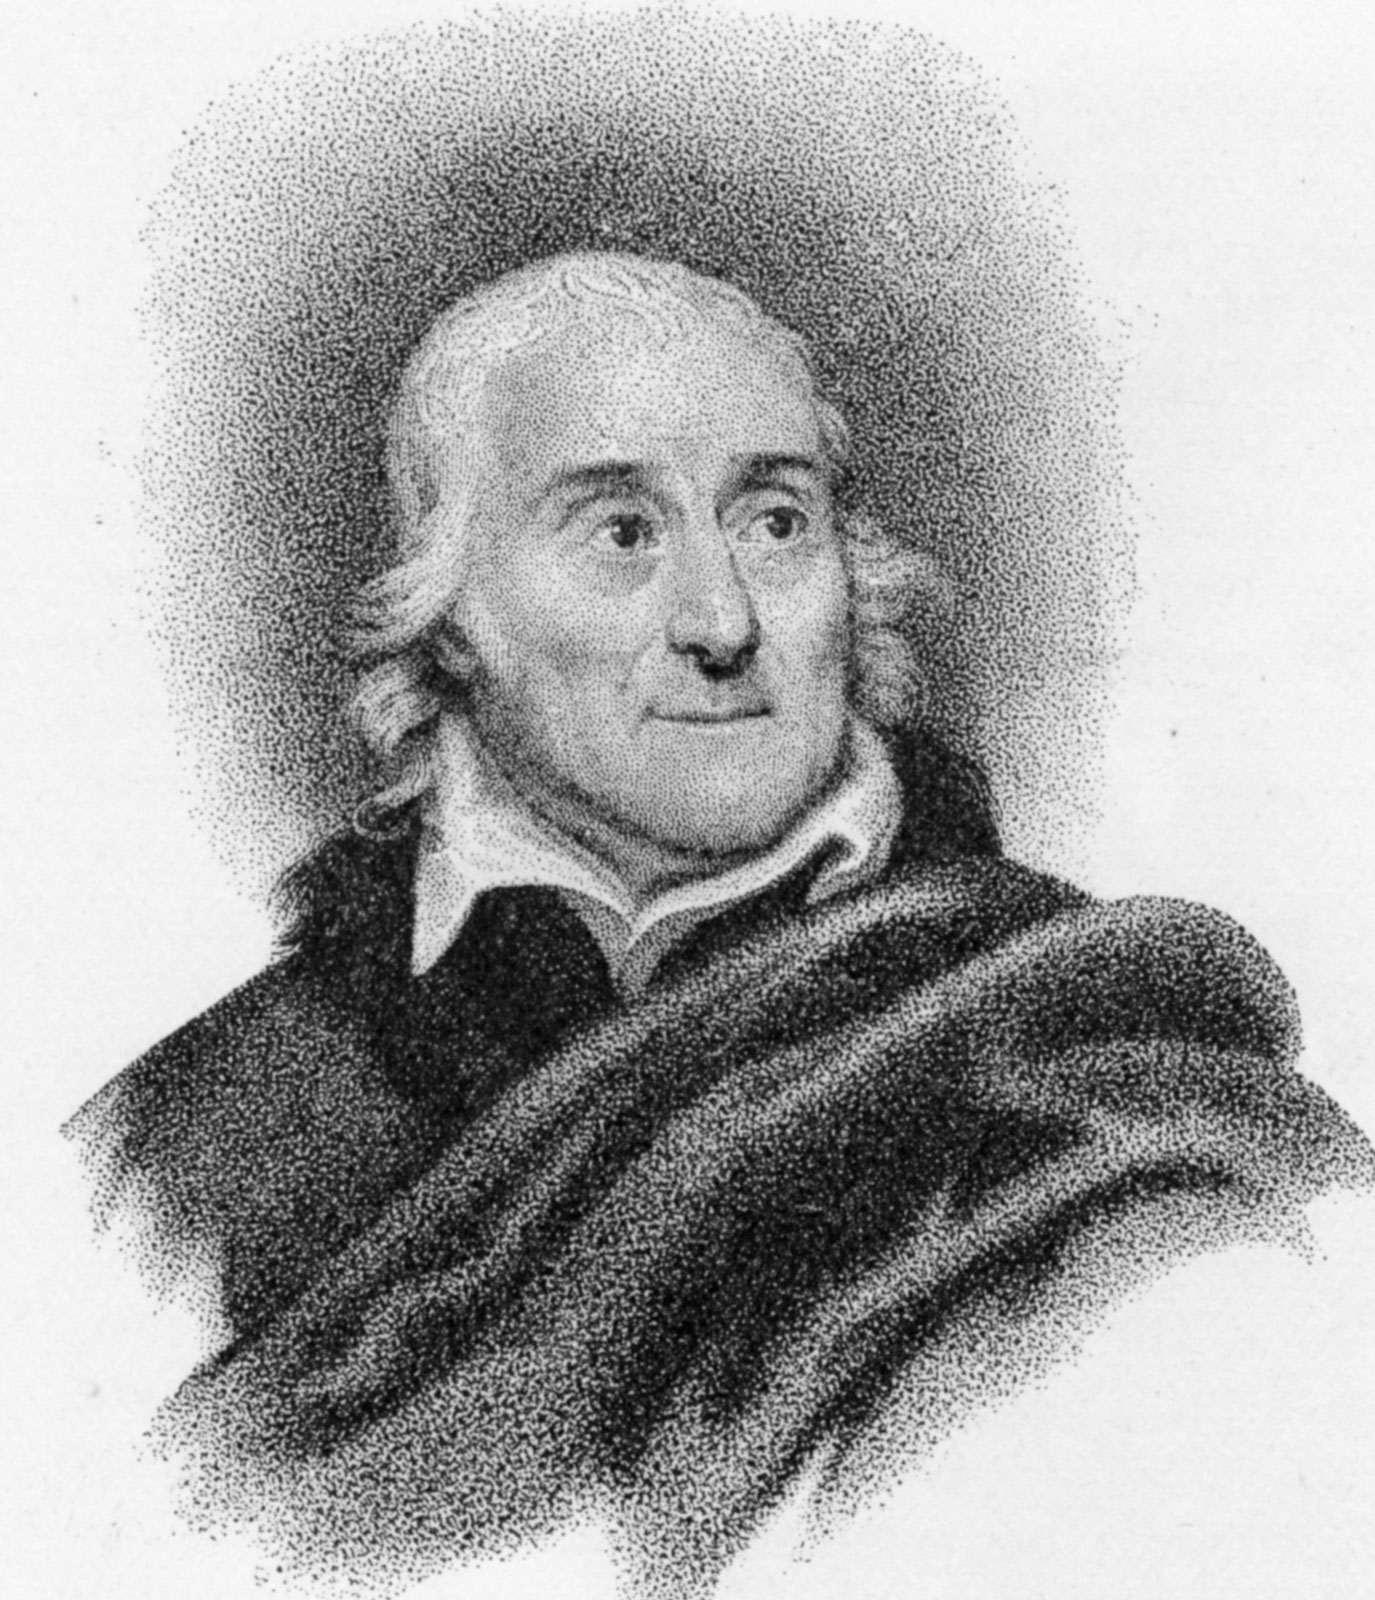 Portrait (engraving) of Lorenzo da Ponte (1749...